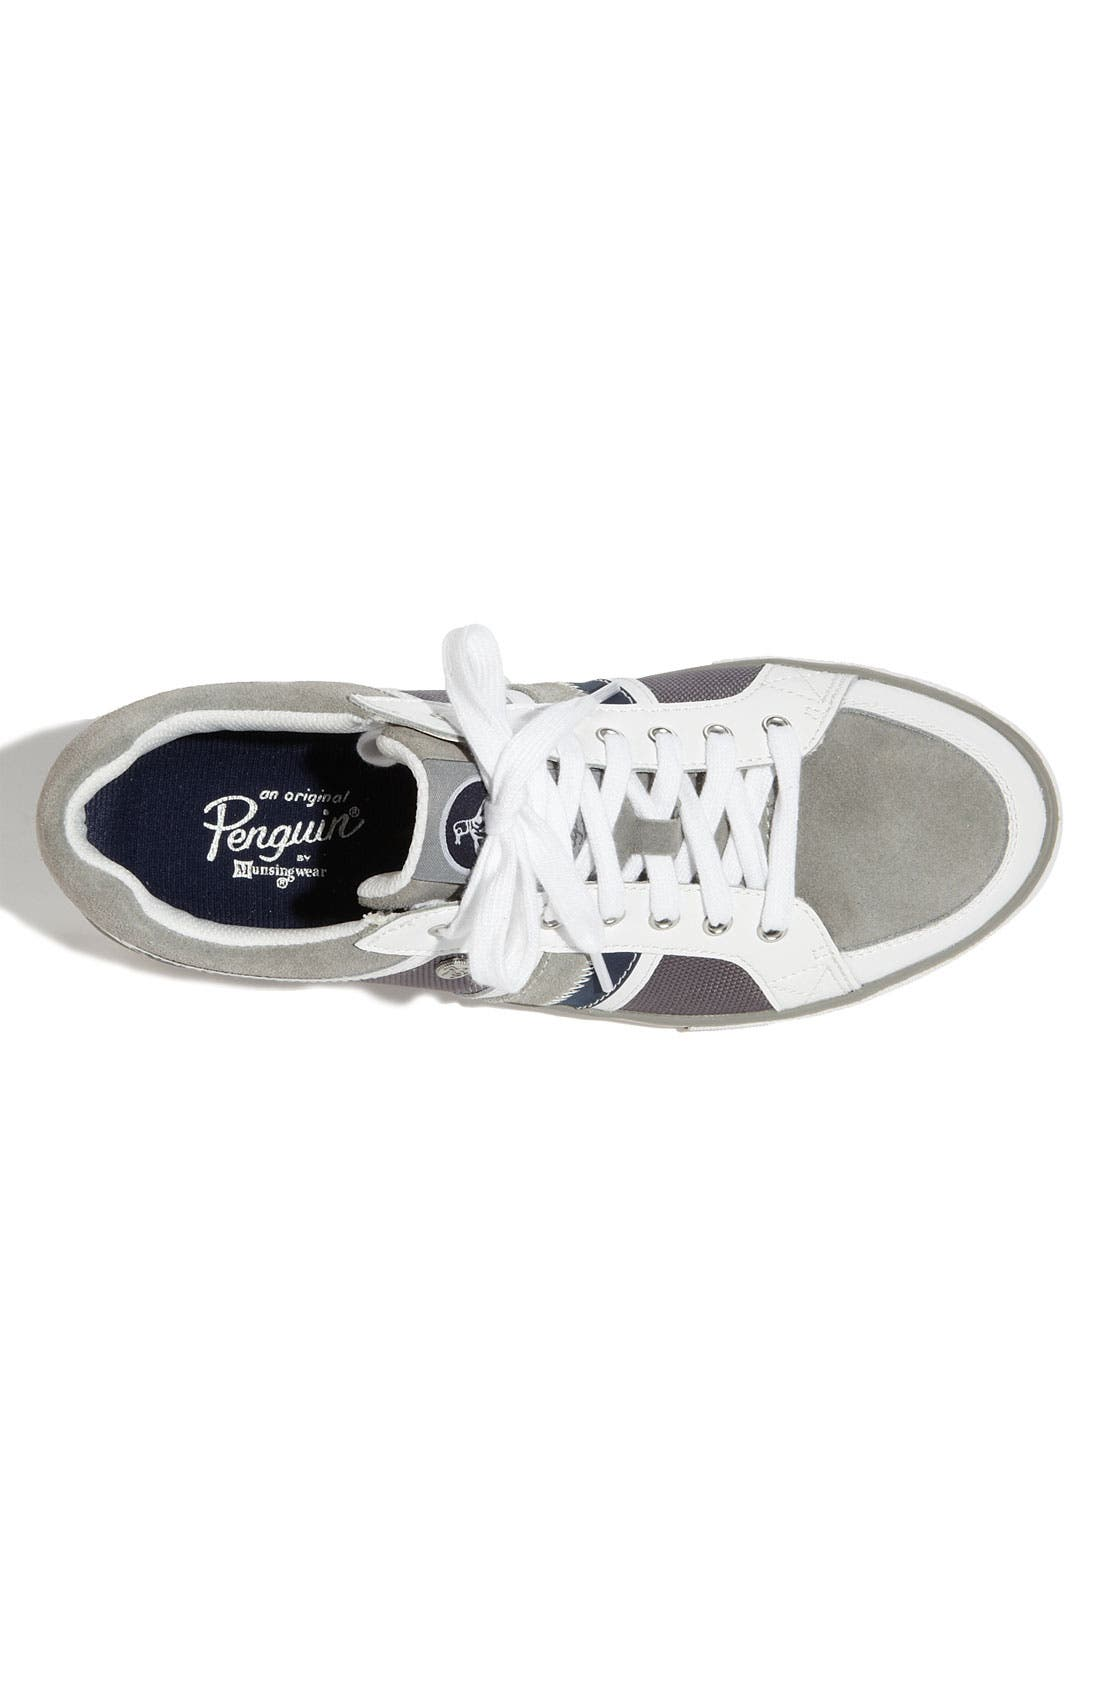 Alternate Image 3  - Original Penguin 'Thaw' Sneaker